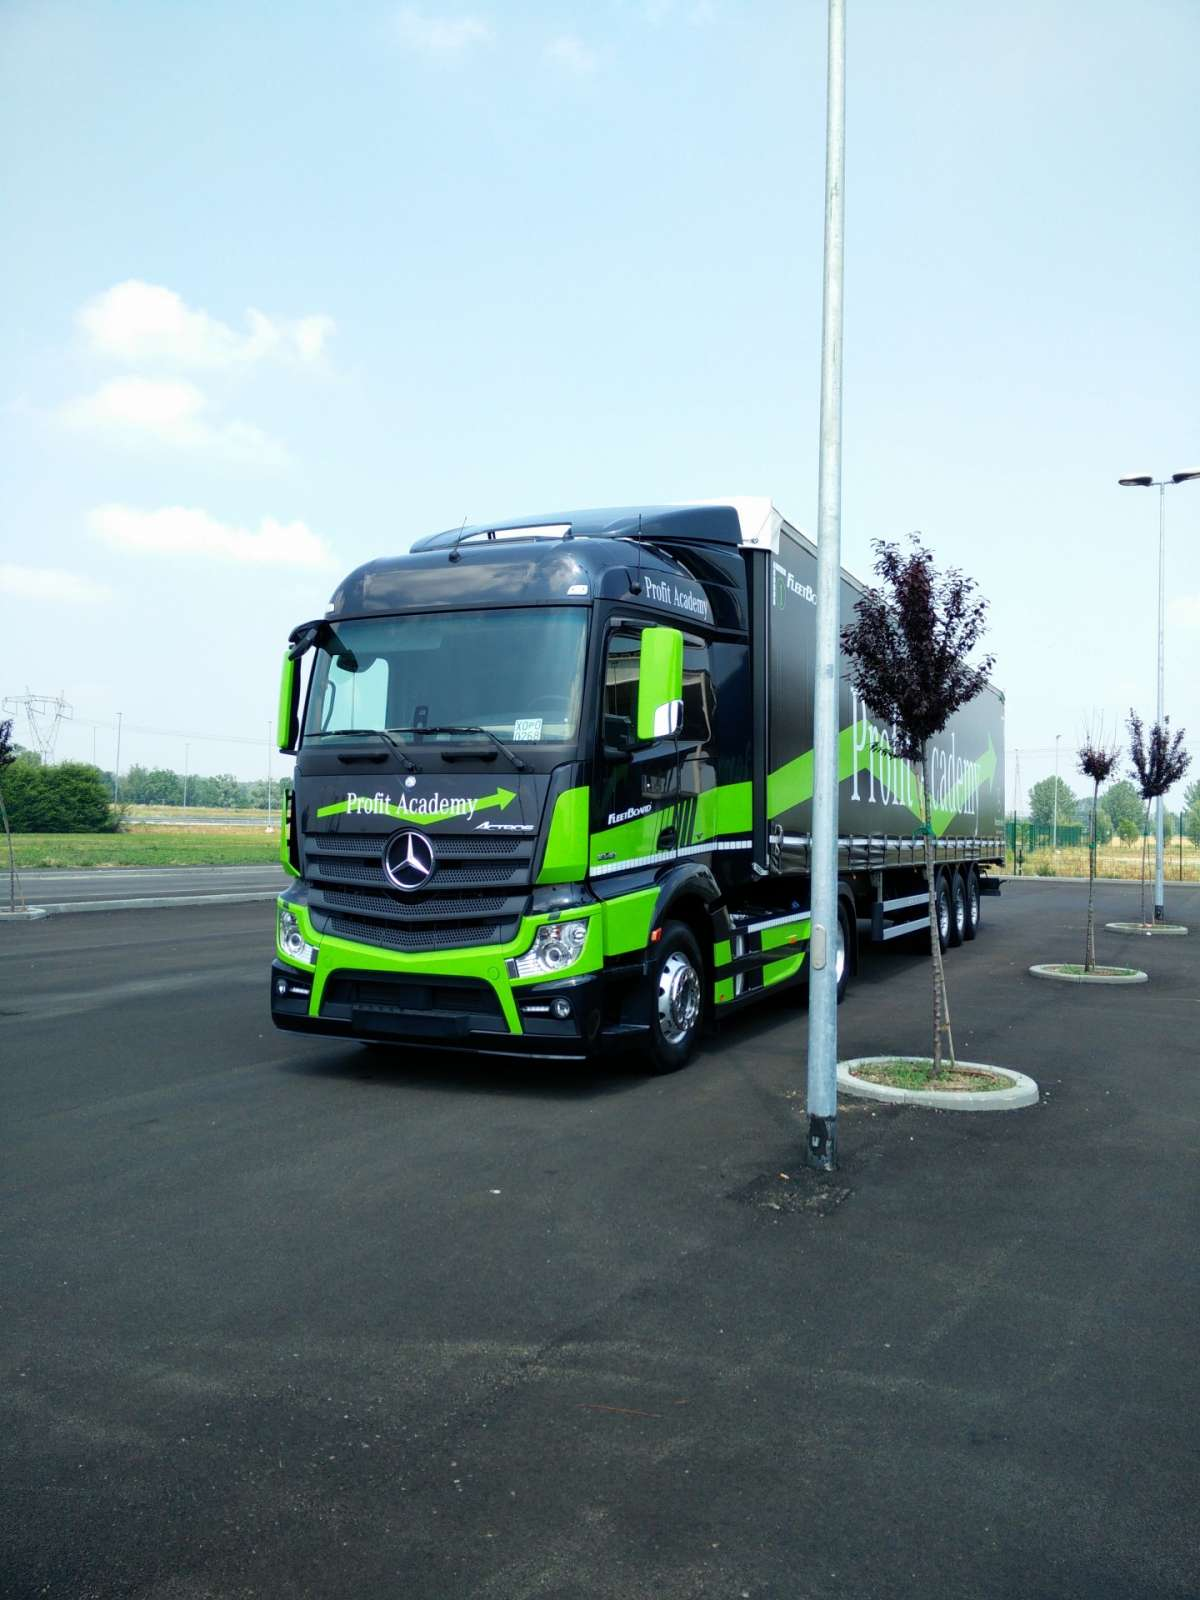 muso Mercedes Actros Profit Academy